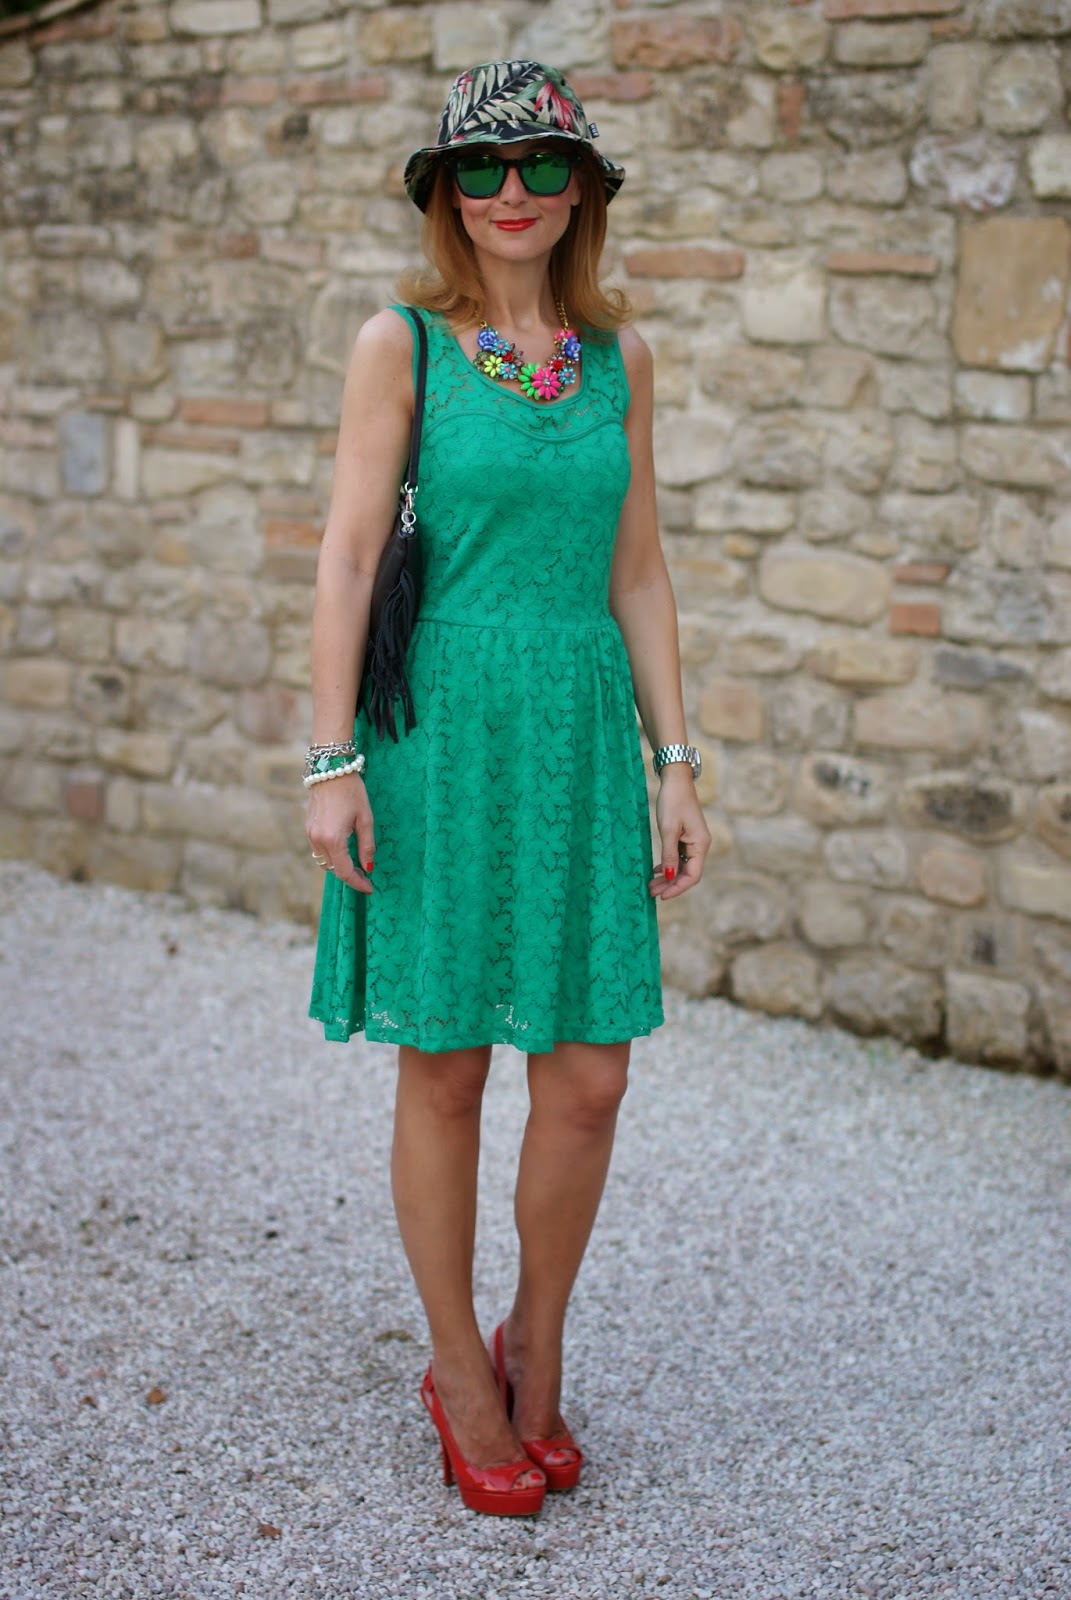 Morgan de toi lace dress, fringed bag, bob hat, oakley green sunglasses, Fashion and Cookies, fashion blogger